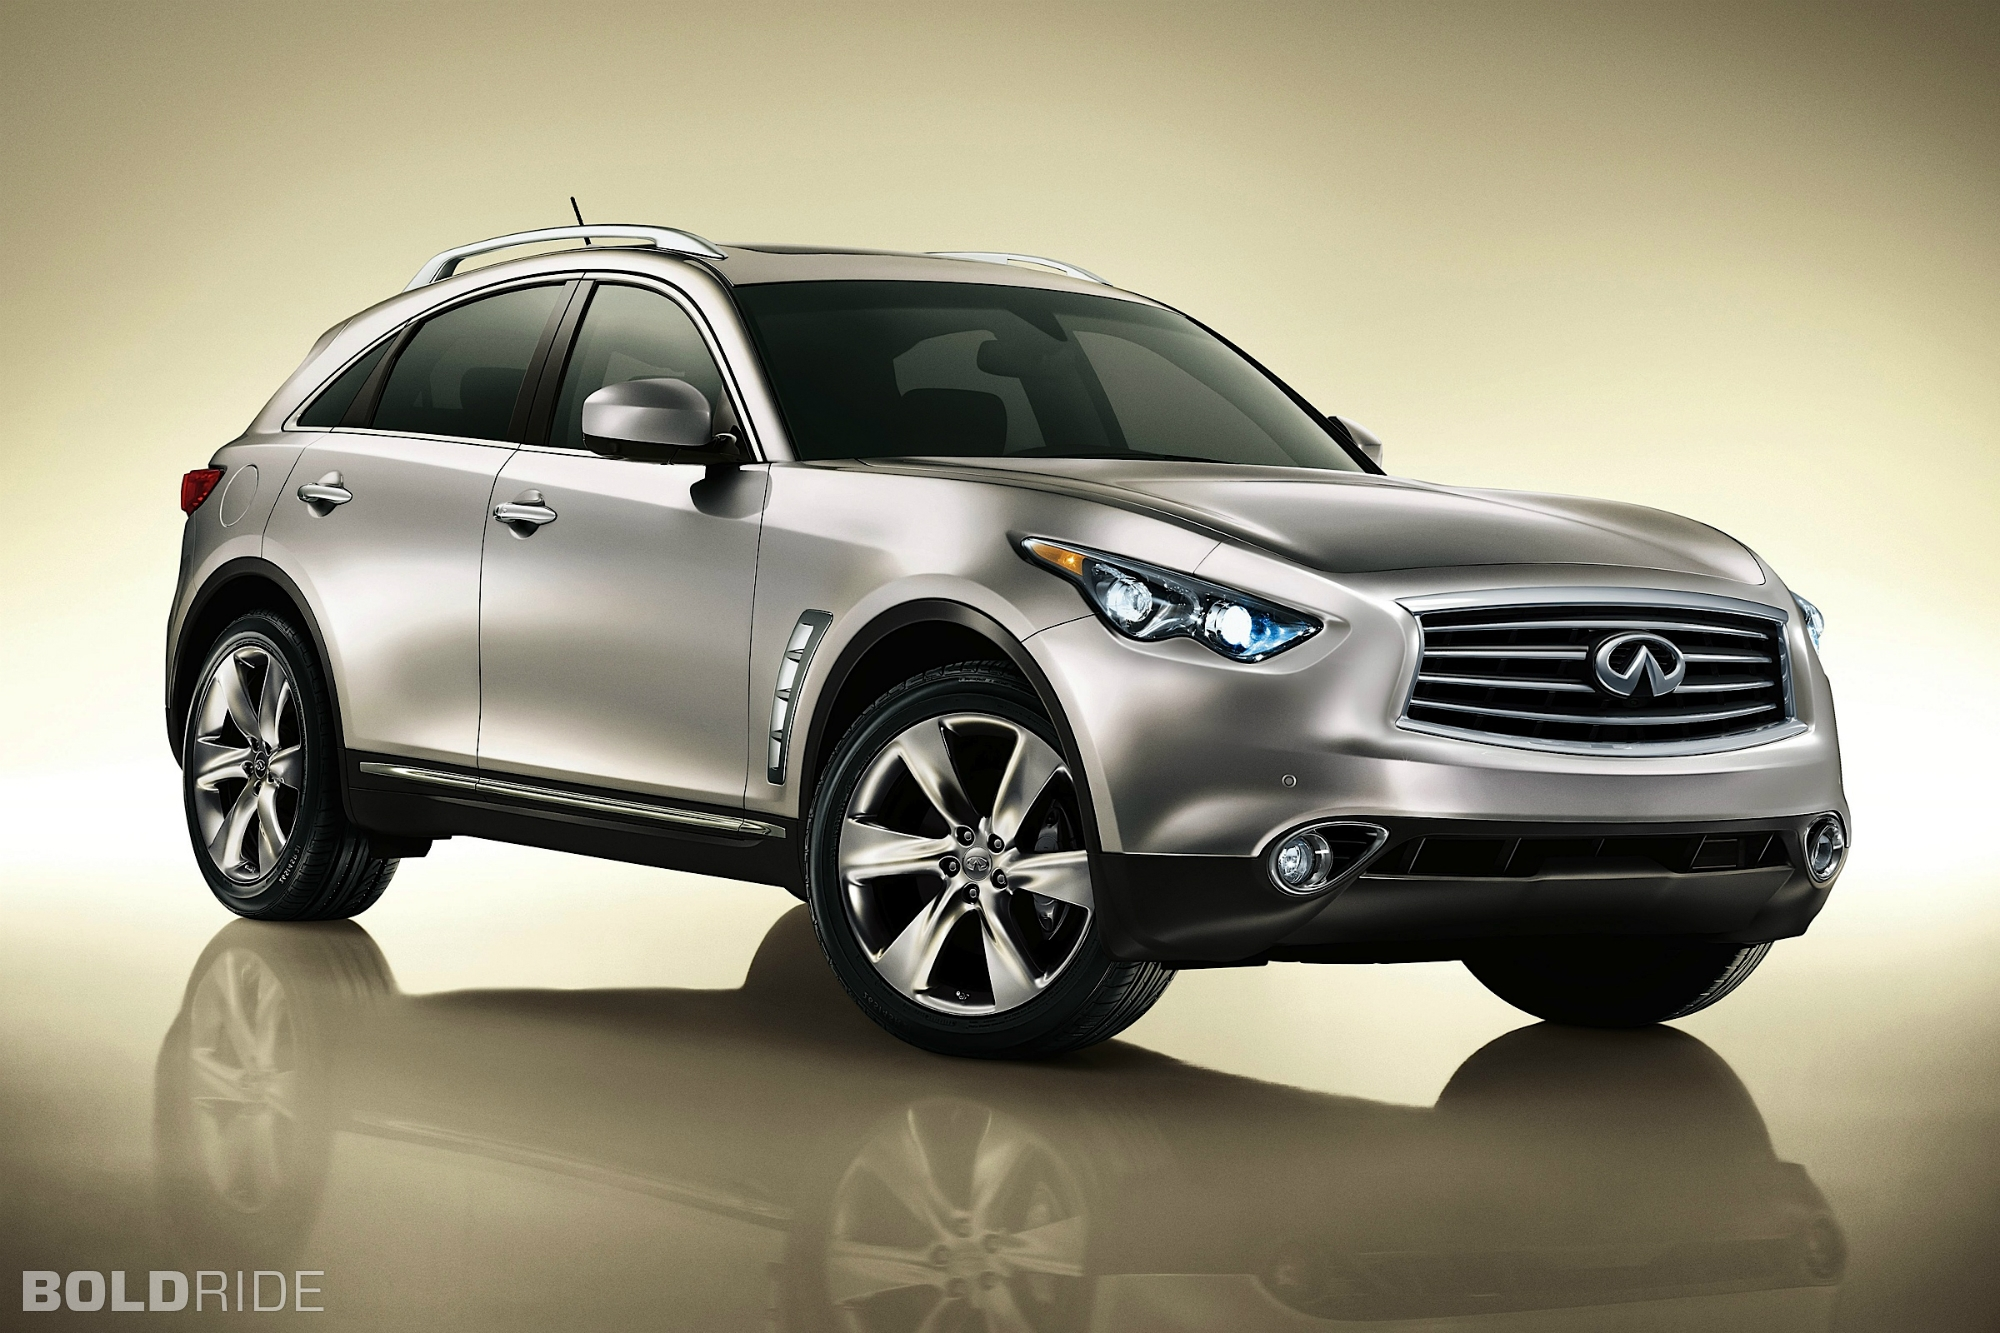 INFINITI FX - Review and photos